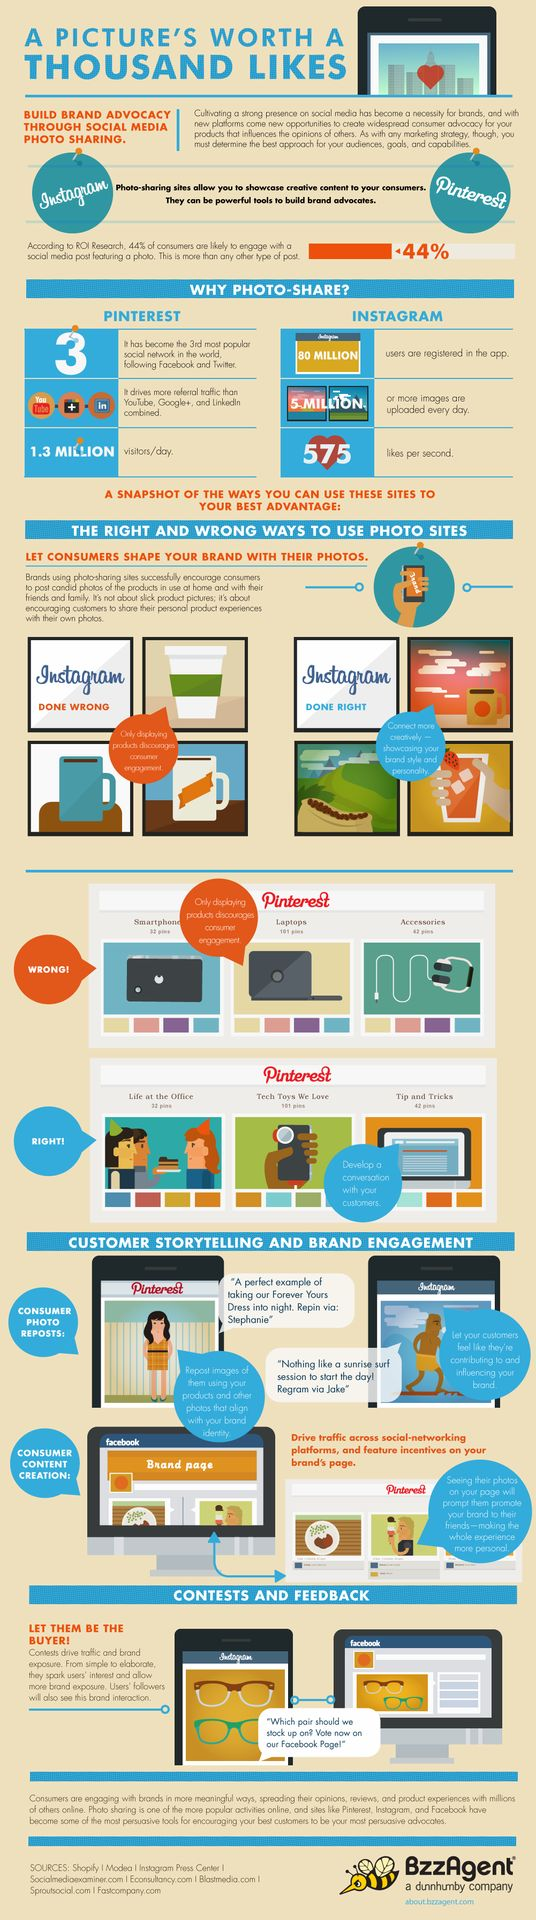 Ve si te gusta esta infografia y dale LIKE ...A picture is worth a thousand likes #instagram #pinterest #infographic